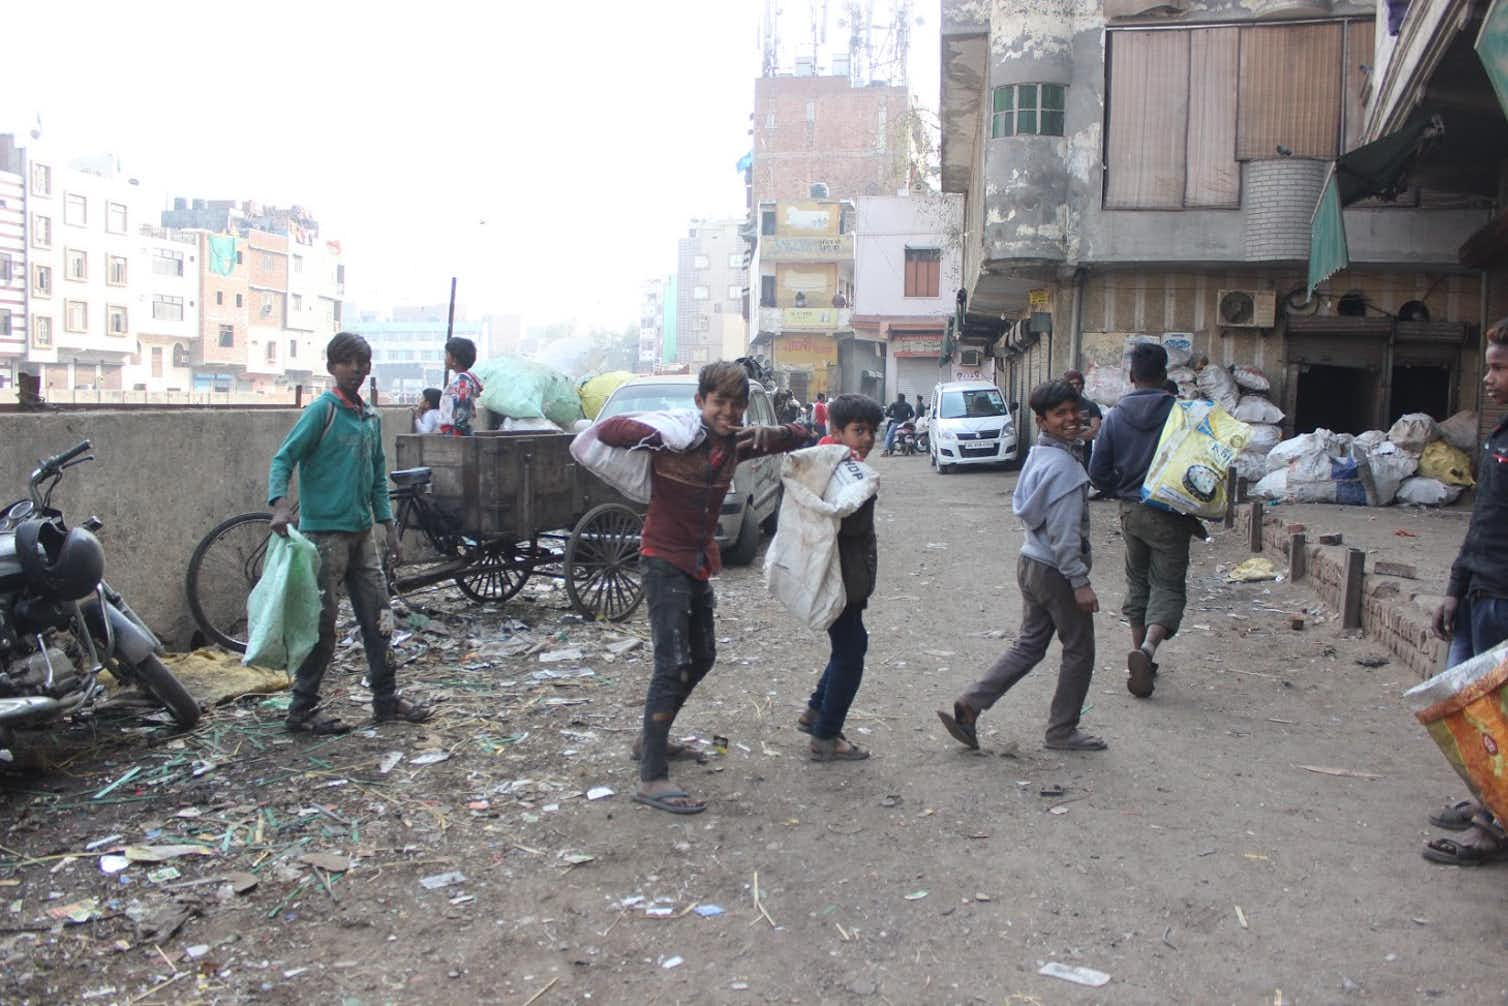 Young boys searching for valuable metal components they can sell in Seelampur. Photo credit: Author provided